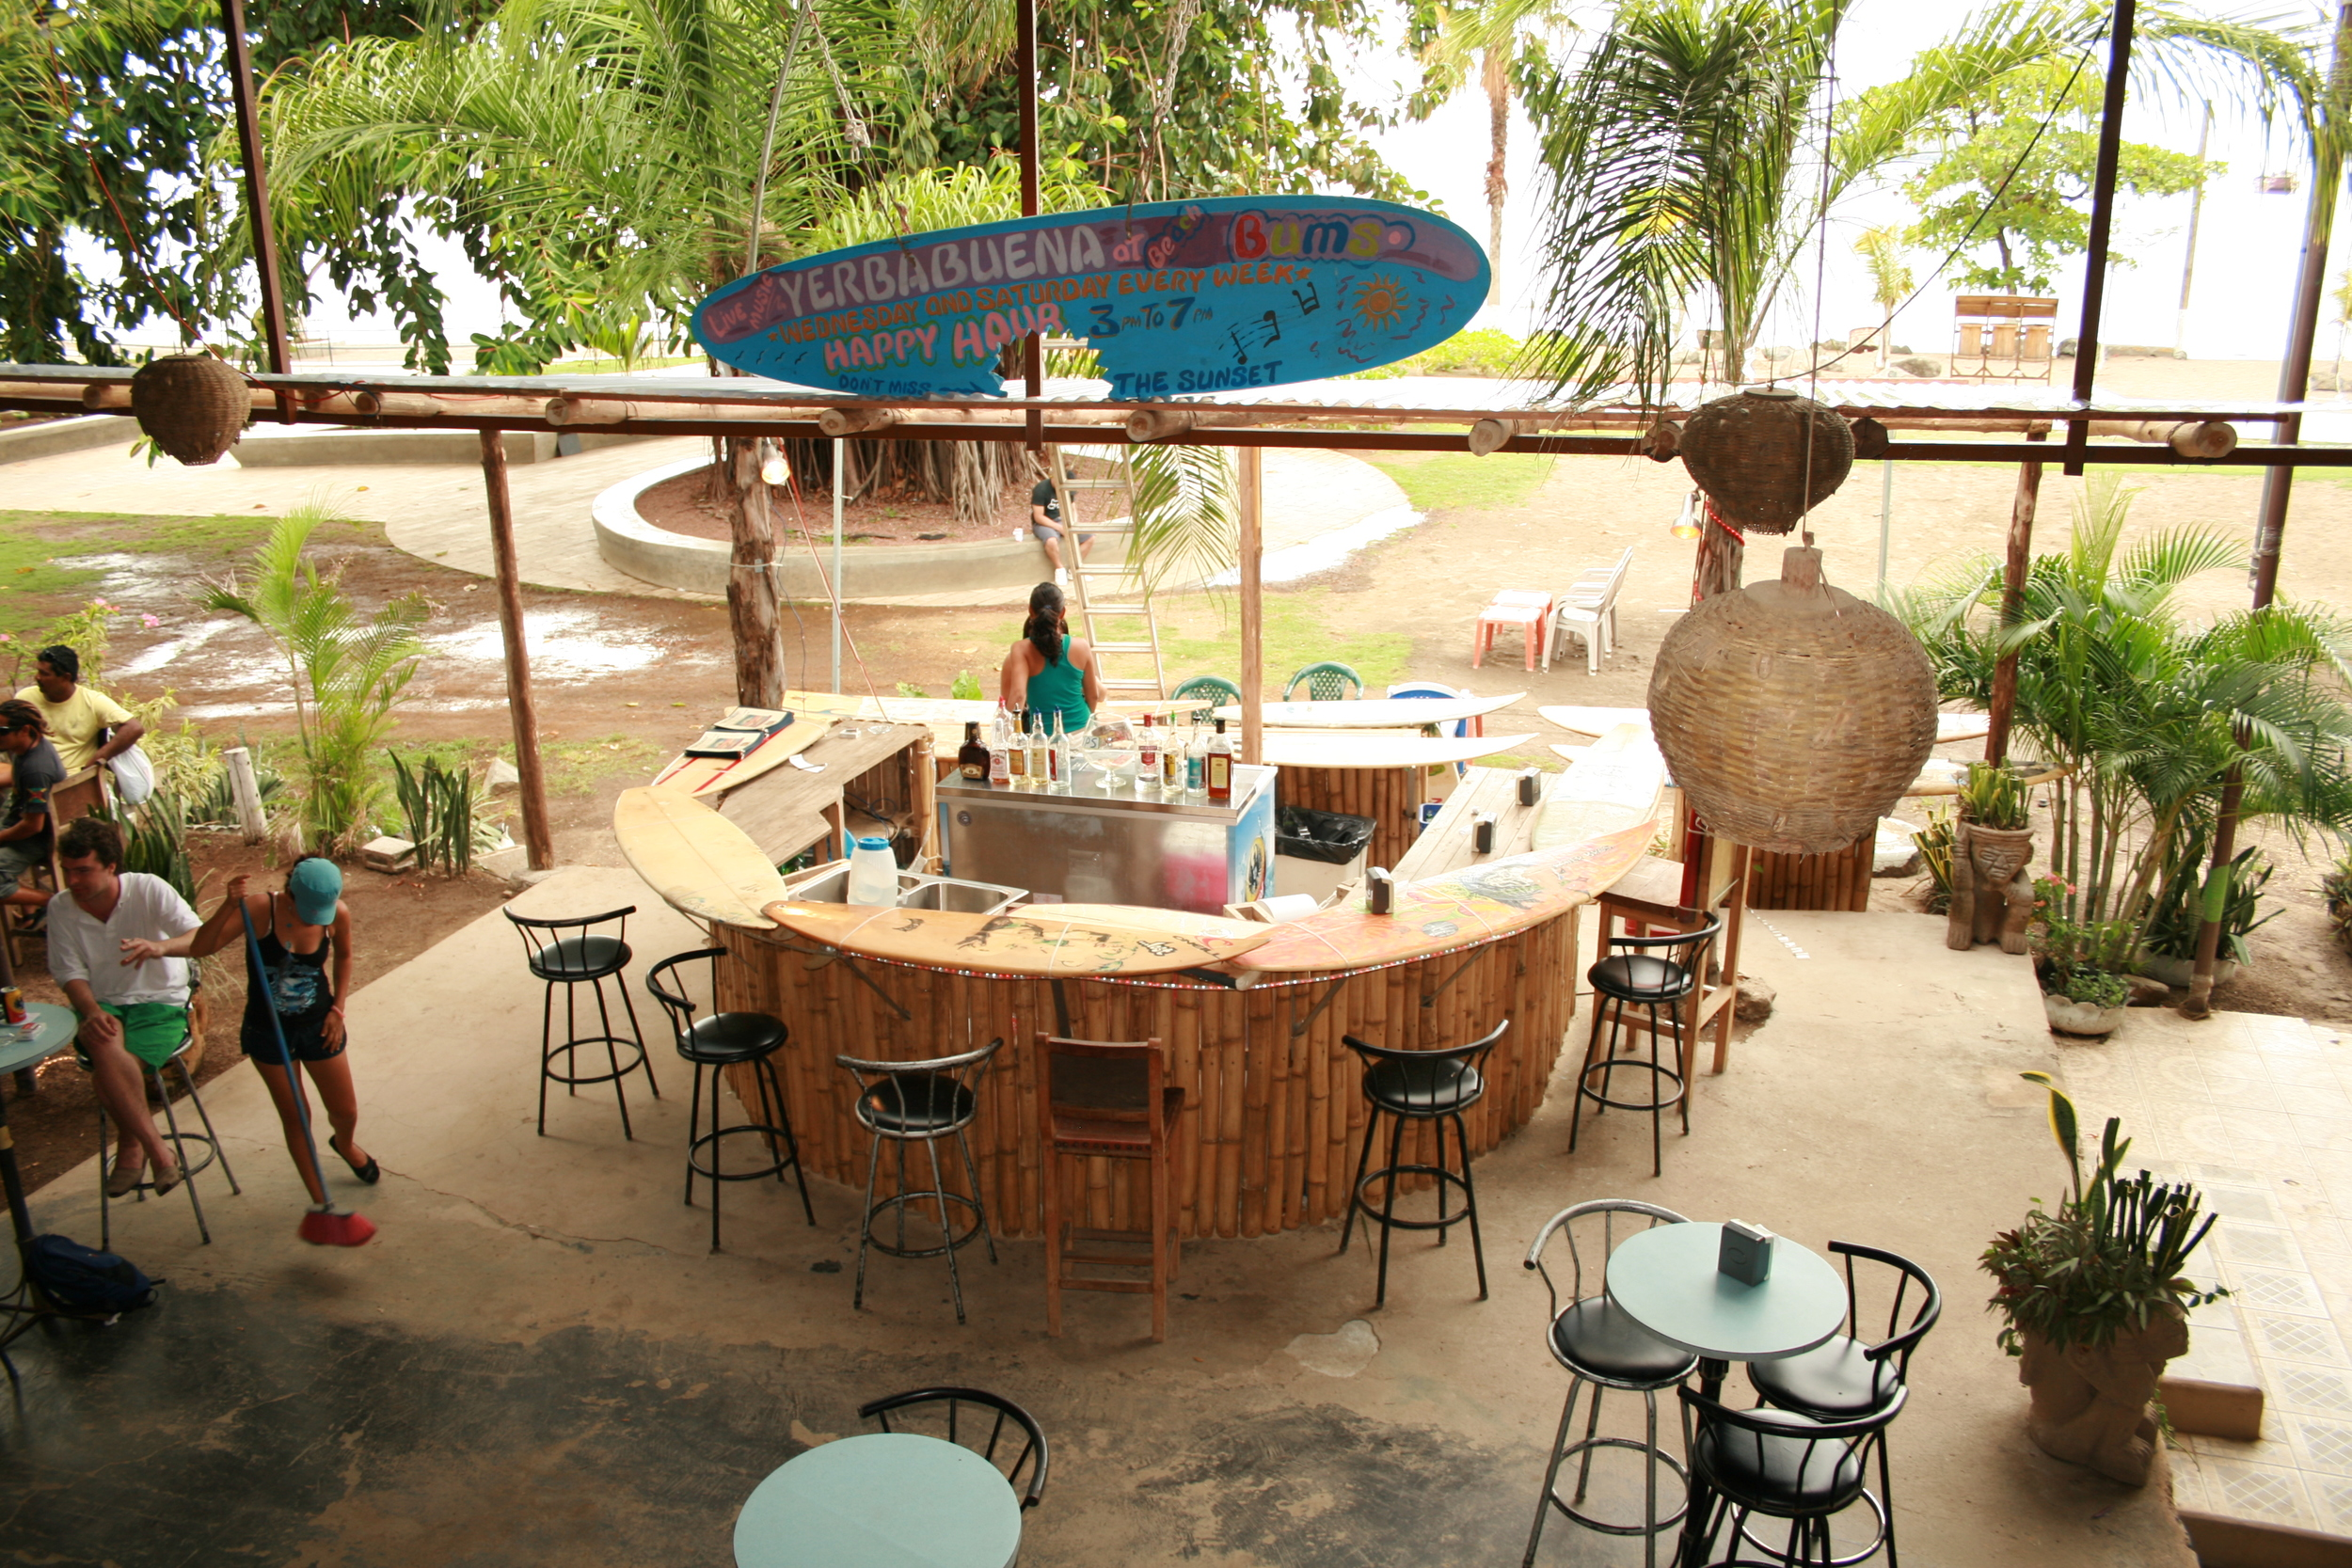 Bar at Beach Bums